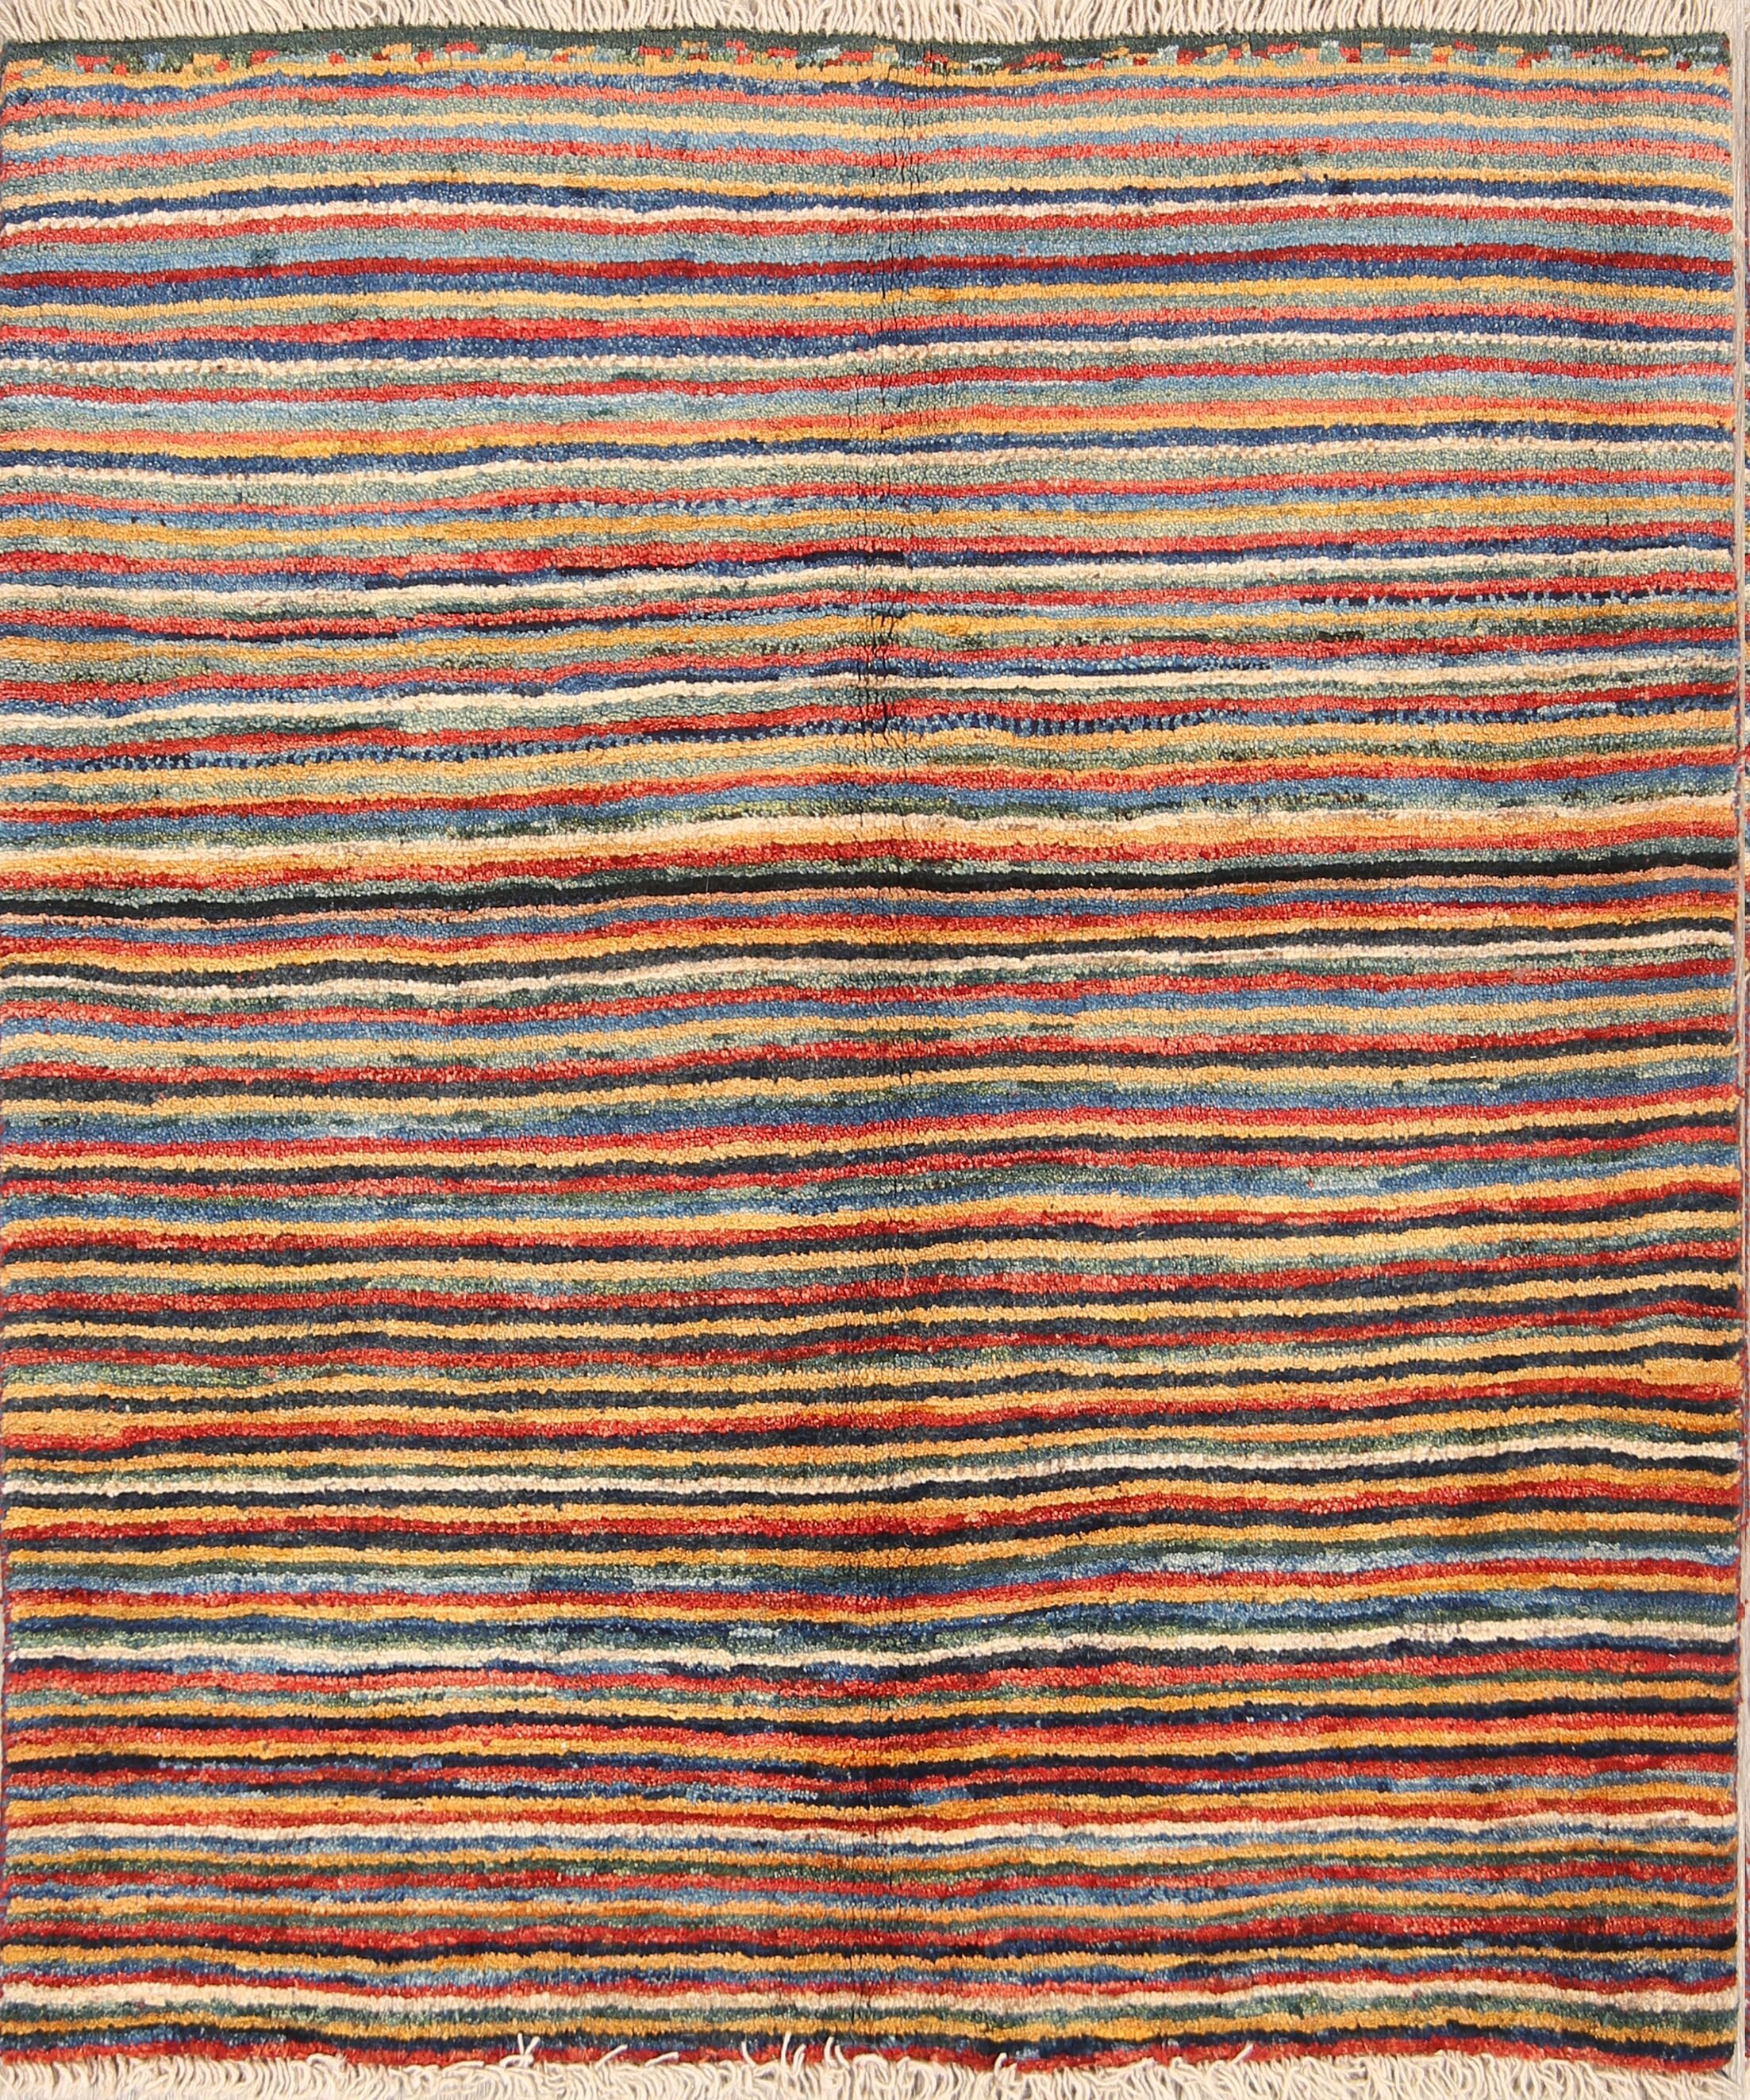 One-of-a-Kind Shiraz Gabbeh Persian Traditional Hand-Knotted 3'11